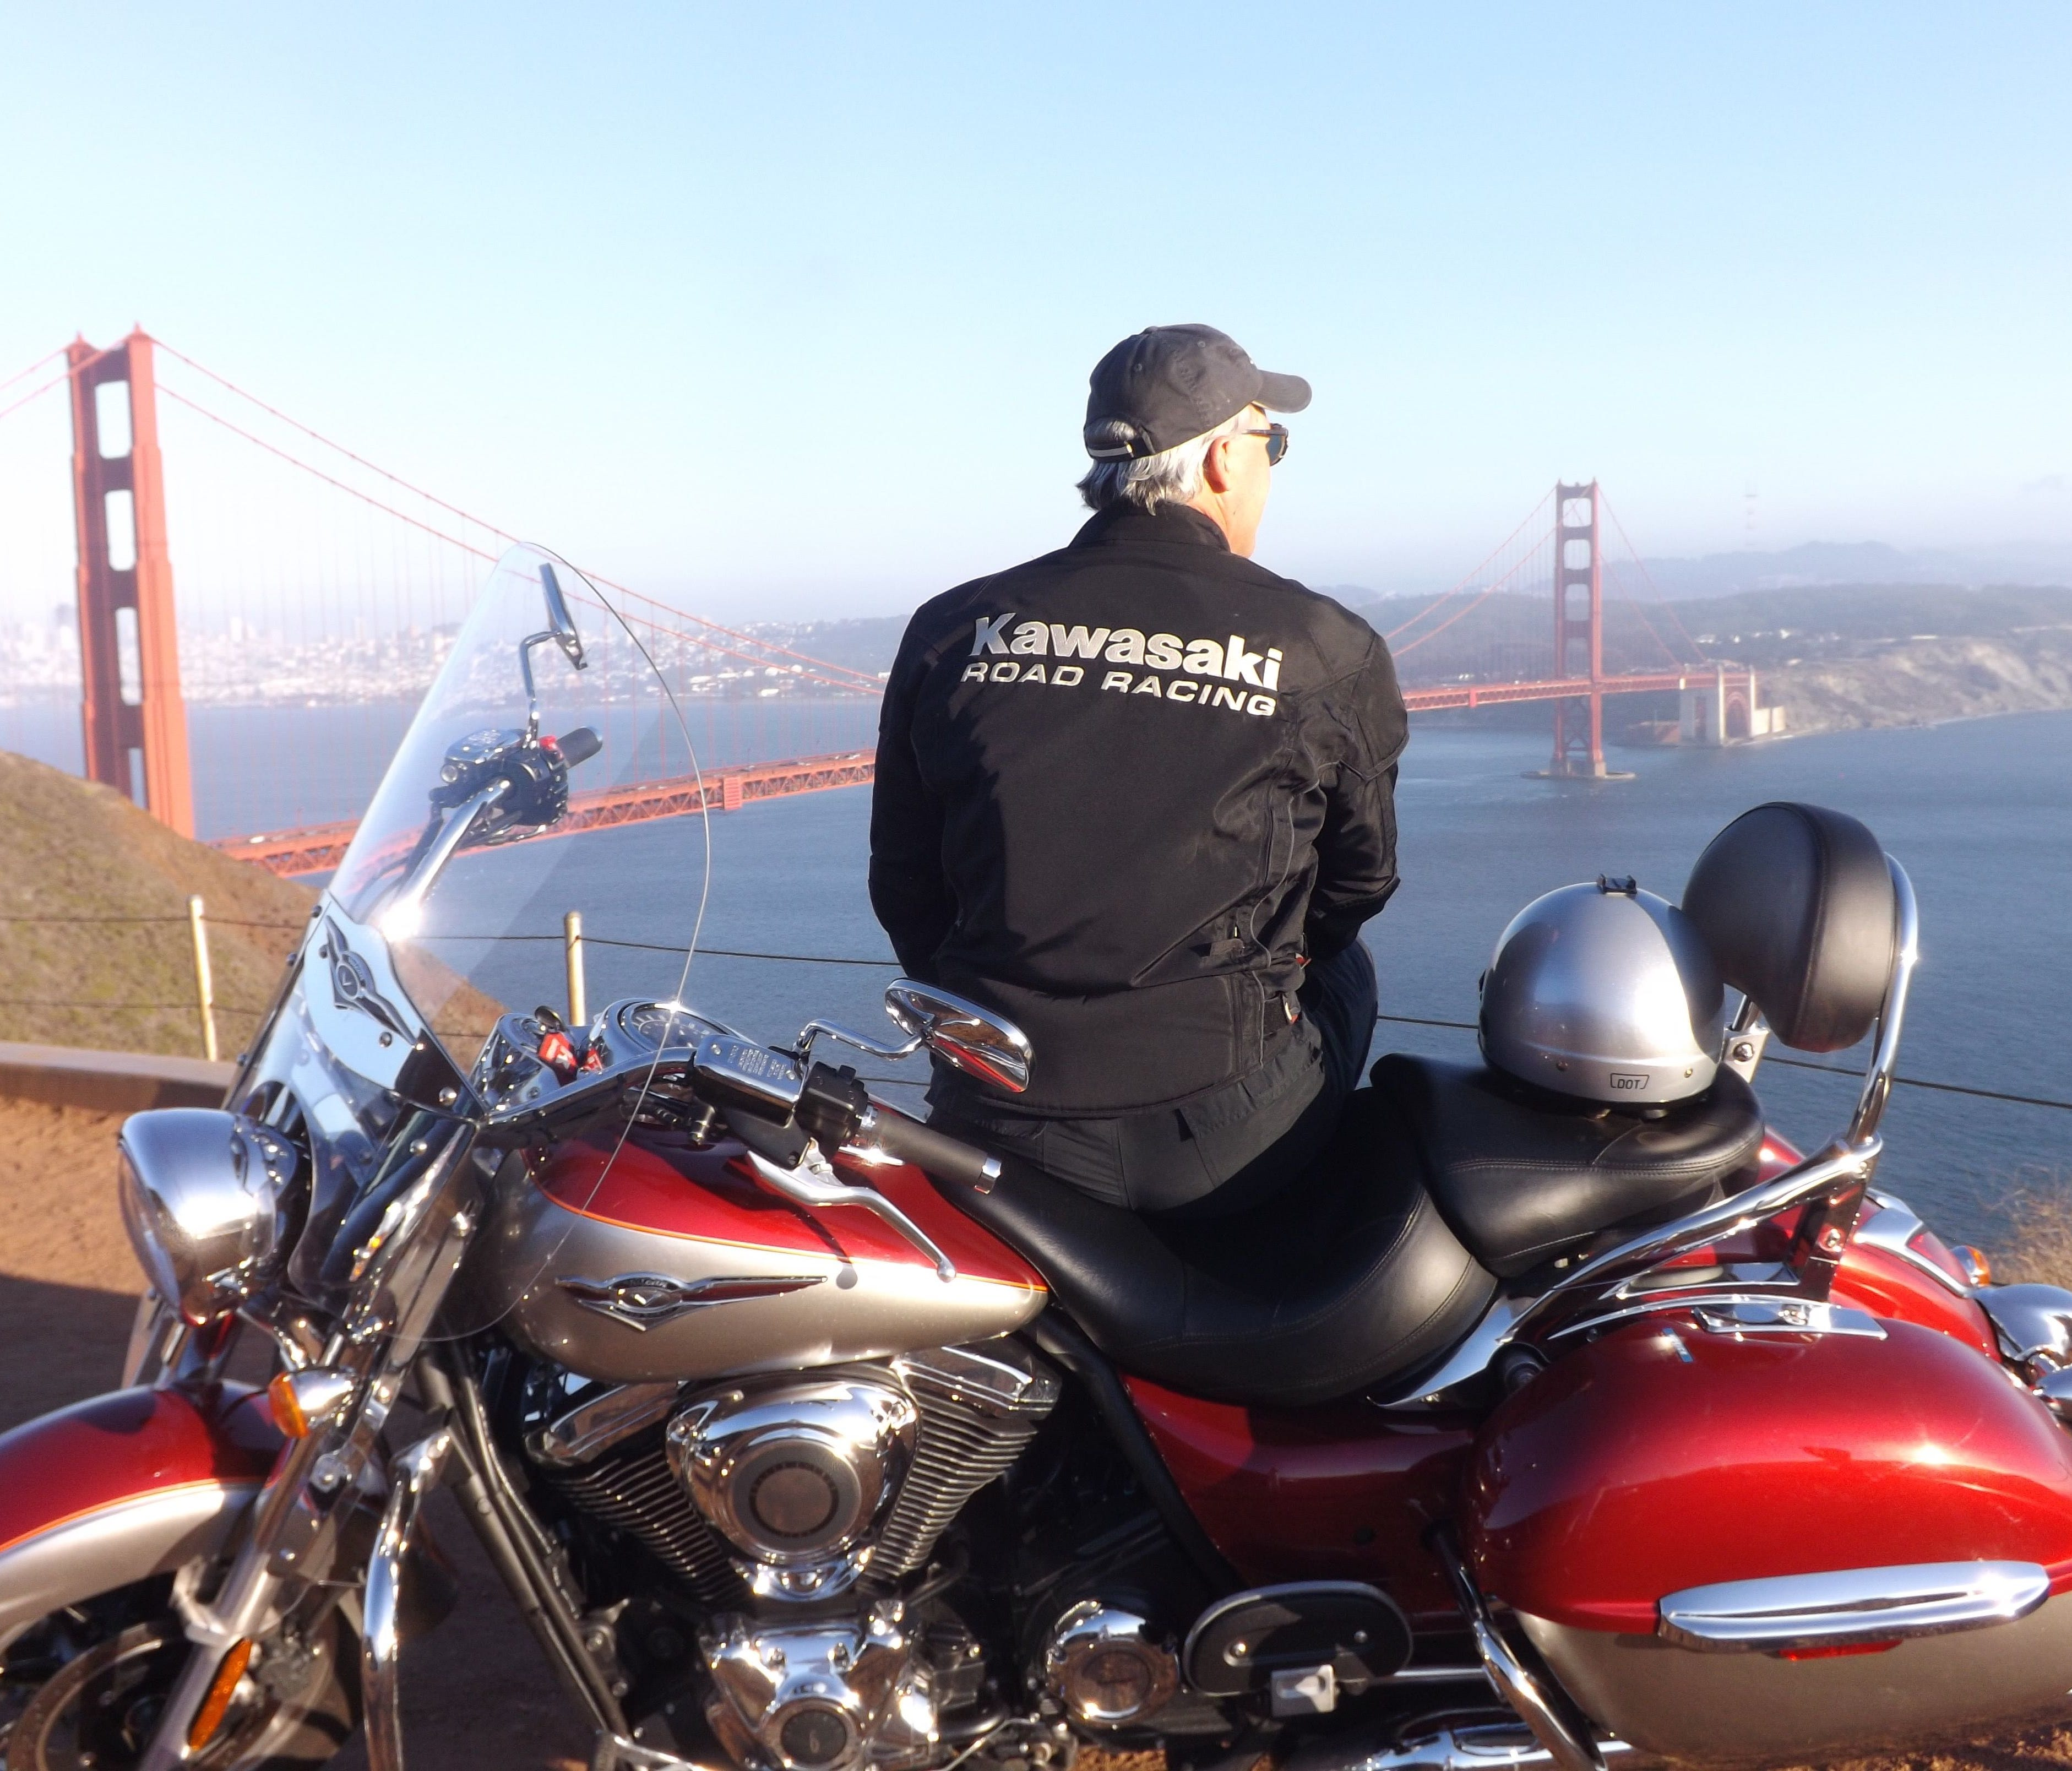 The view from the hills overlooking San Francisco and the Golden Gate Bridge is just one reason to ride a motorcycle.